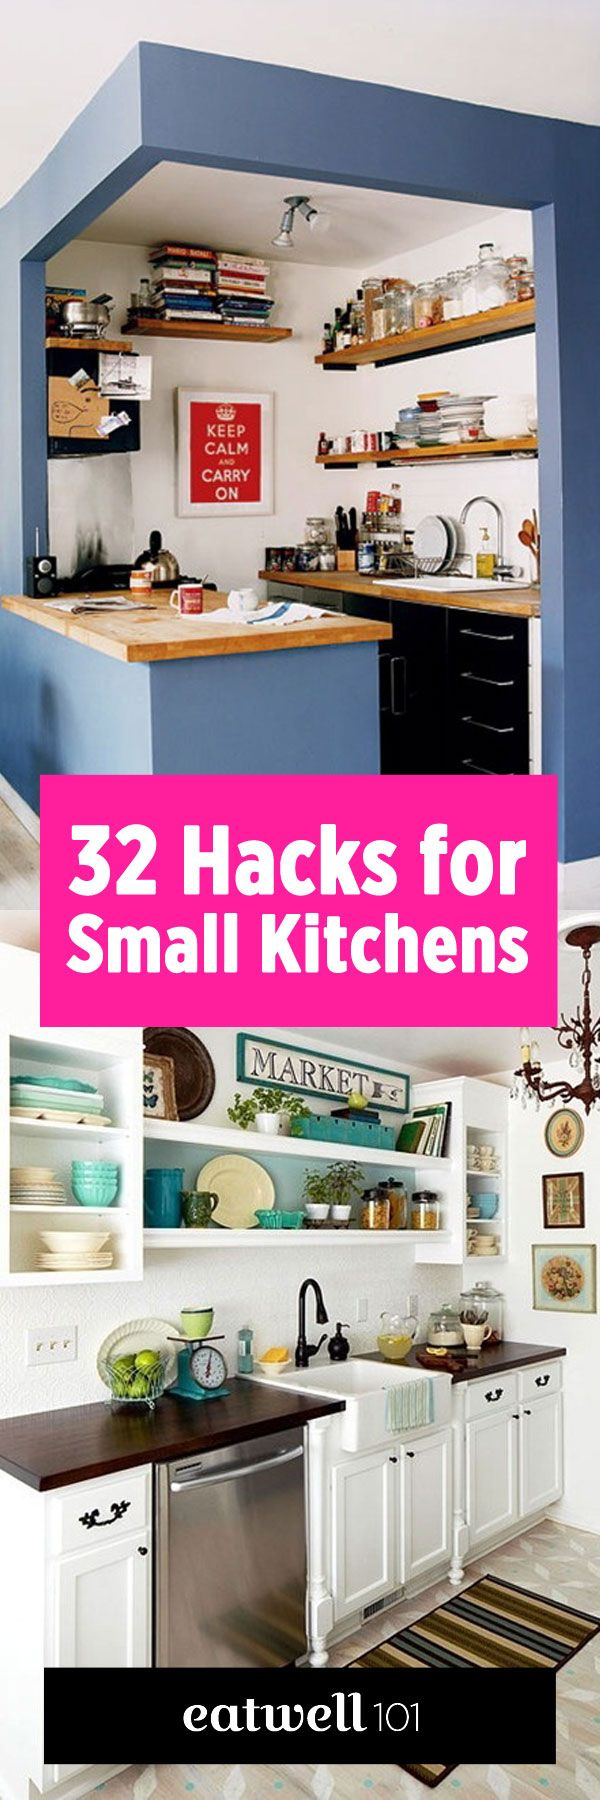 Best 25 small kitchen diy ideas on pinterest small kitchen organization small kitchen ideas - Kitchen ideas for small space decor ...